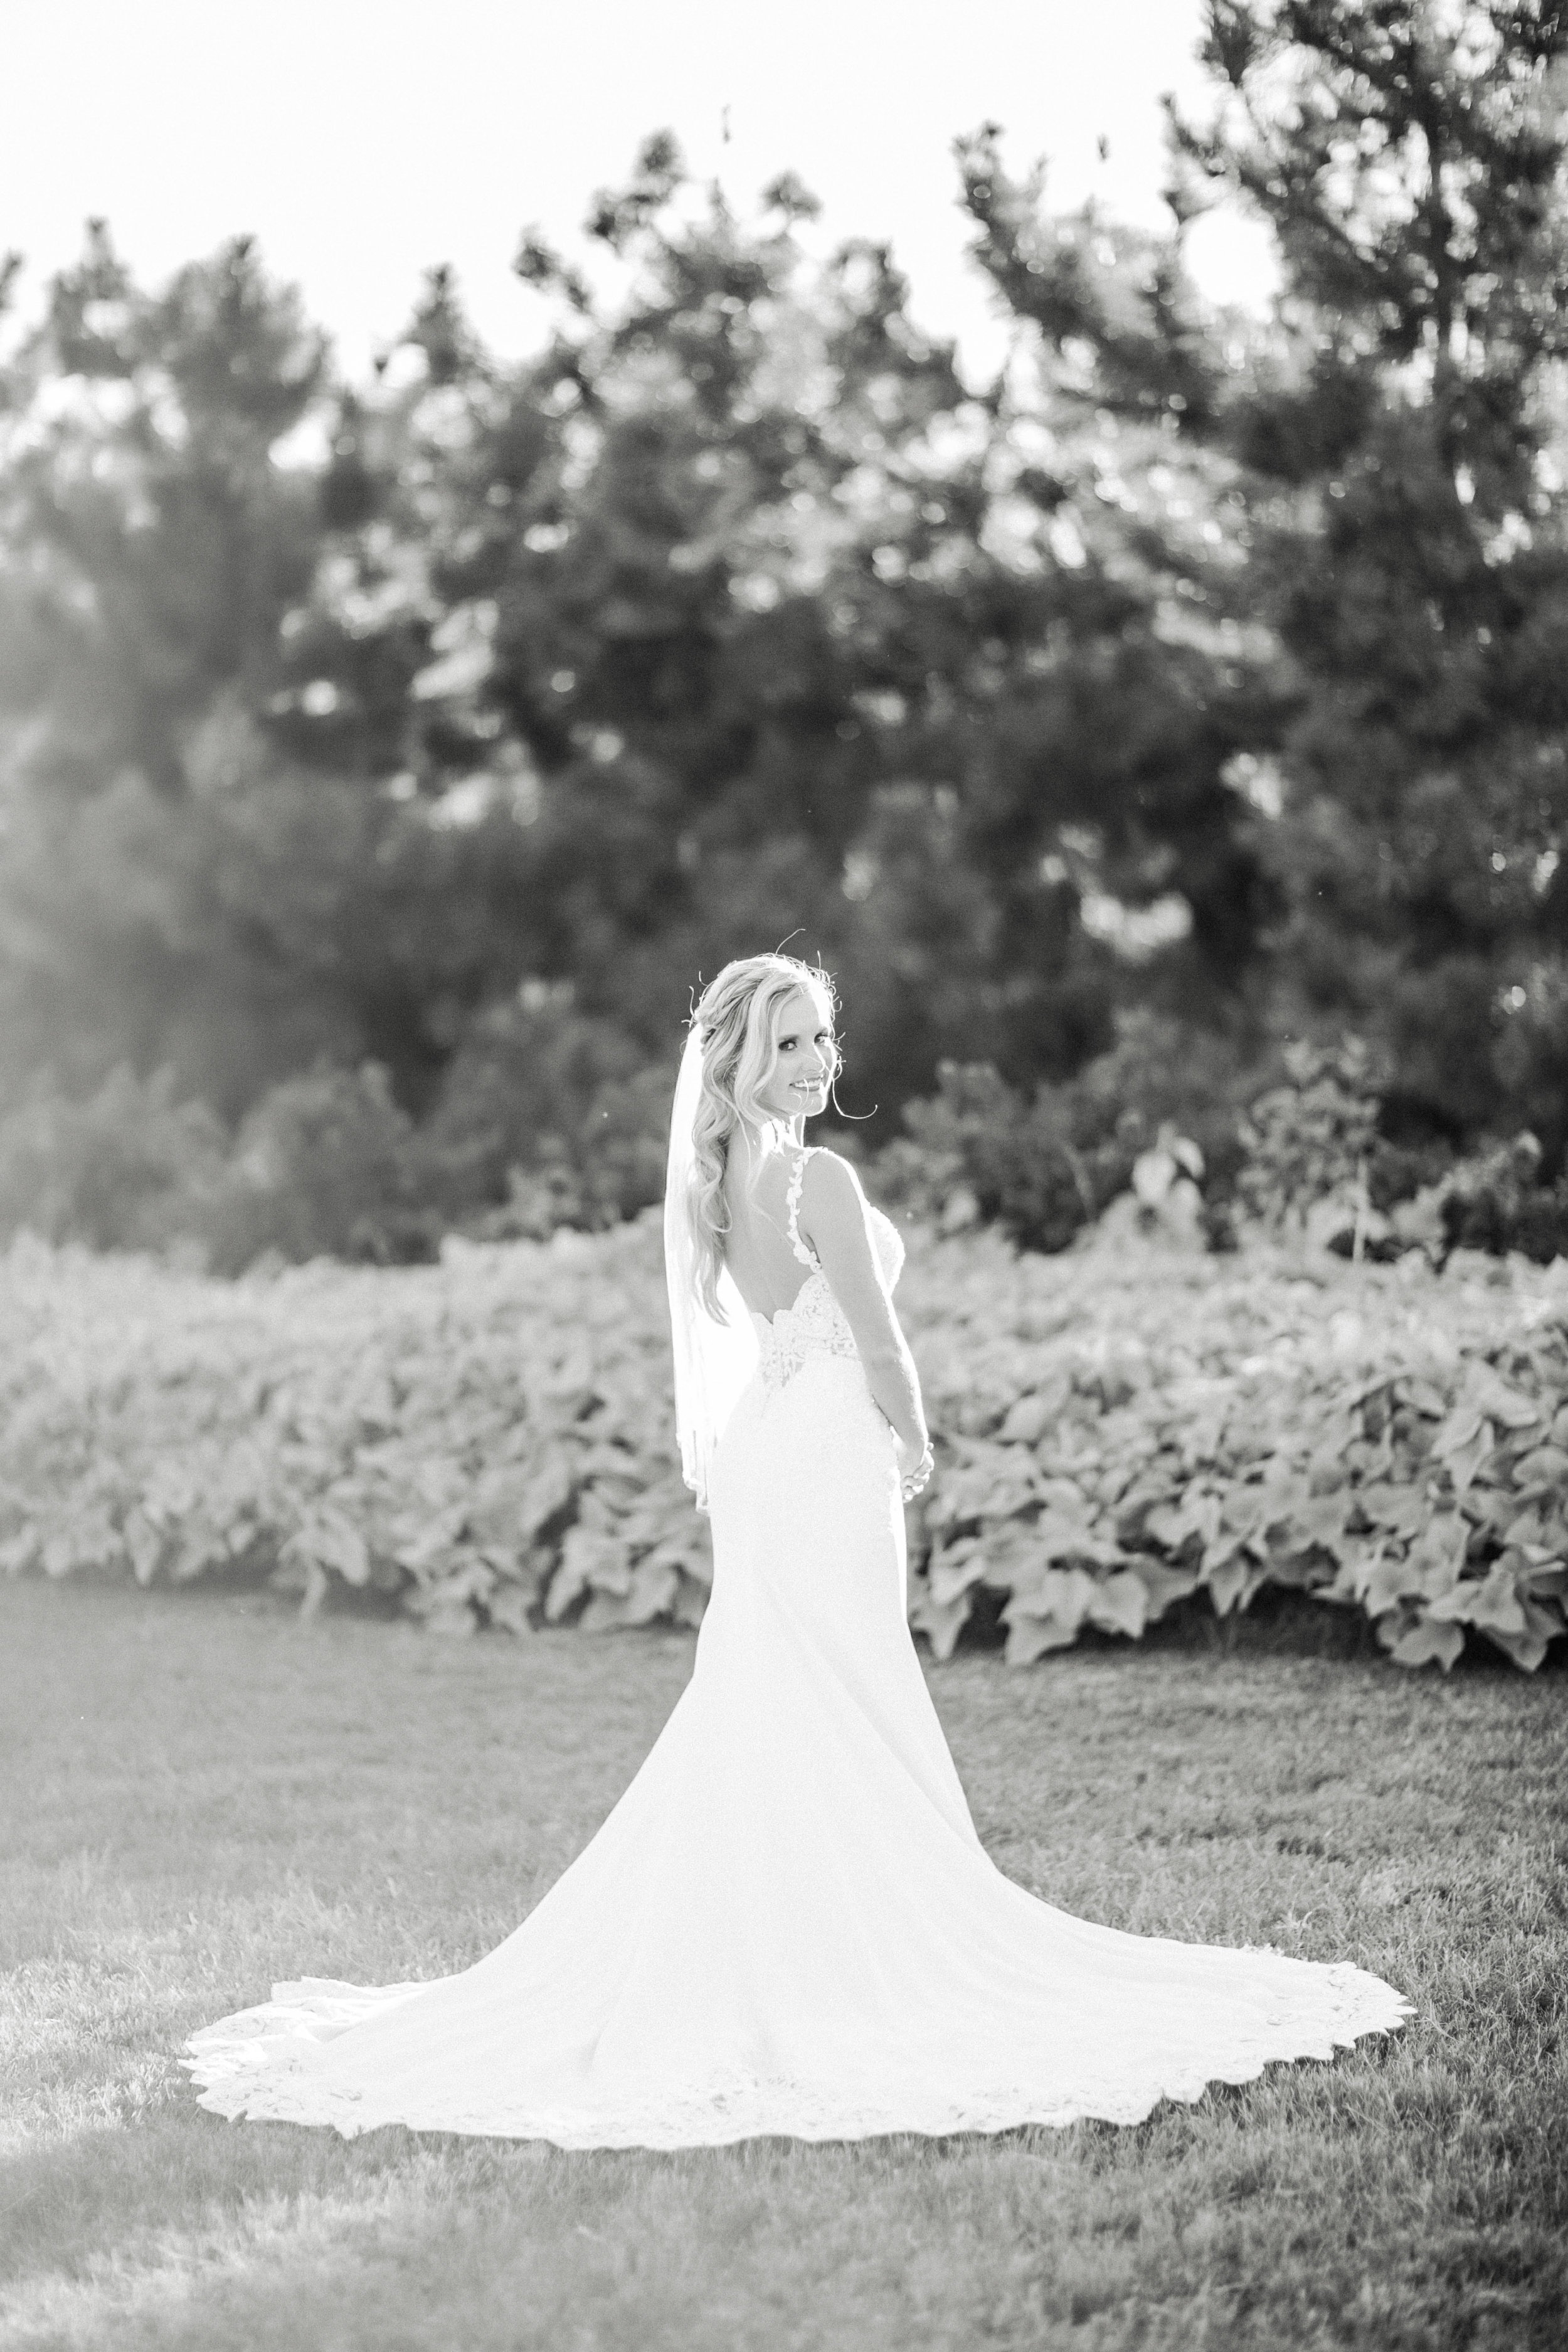 xKelsey-Bridals-120-BW.jpg